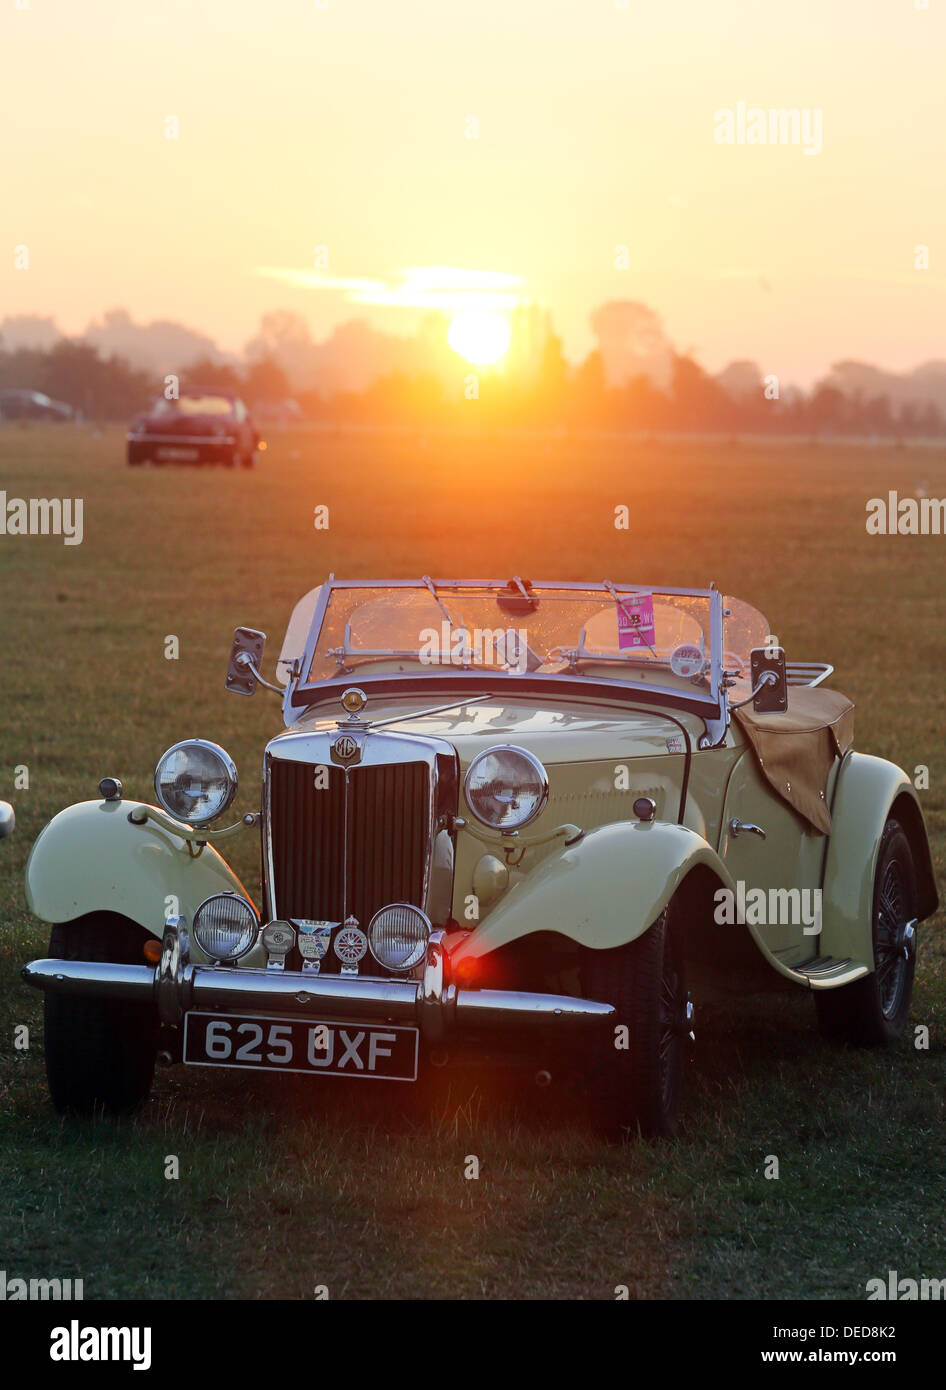 Chichester, UK. 15. September 2013. Goodwood Revival 2013 bei The Goodwood Motor Circuit - Foto zeigt Sonnenaufgang Stockbild